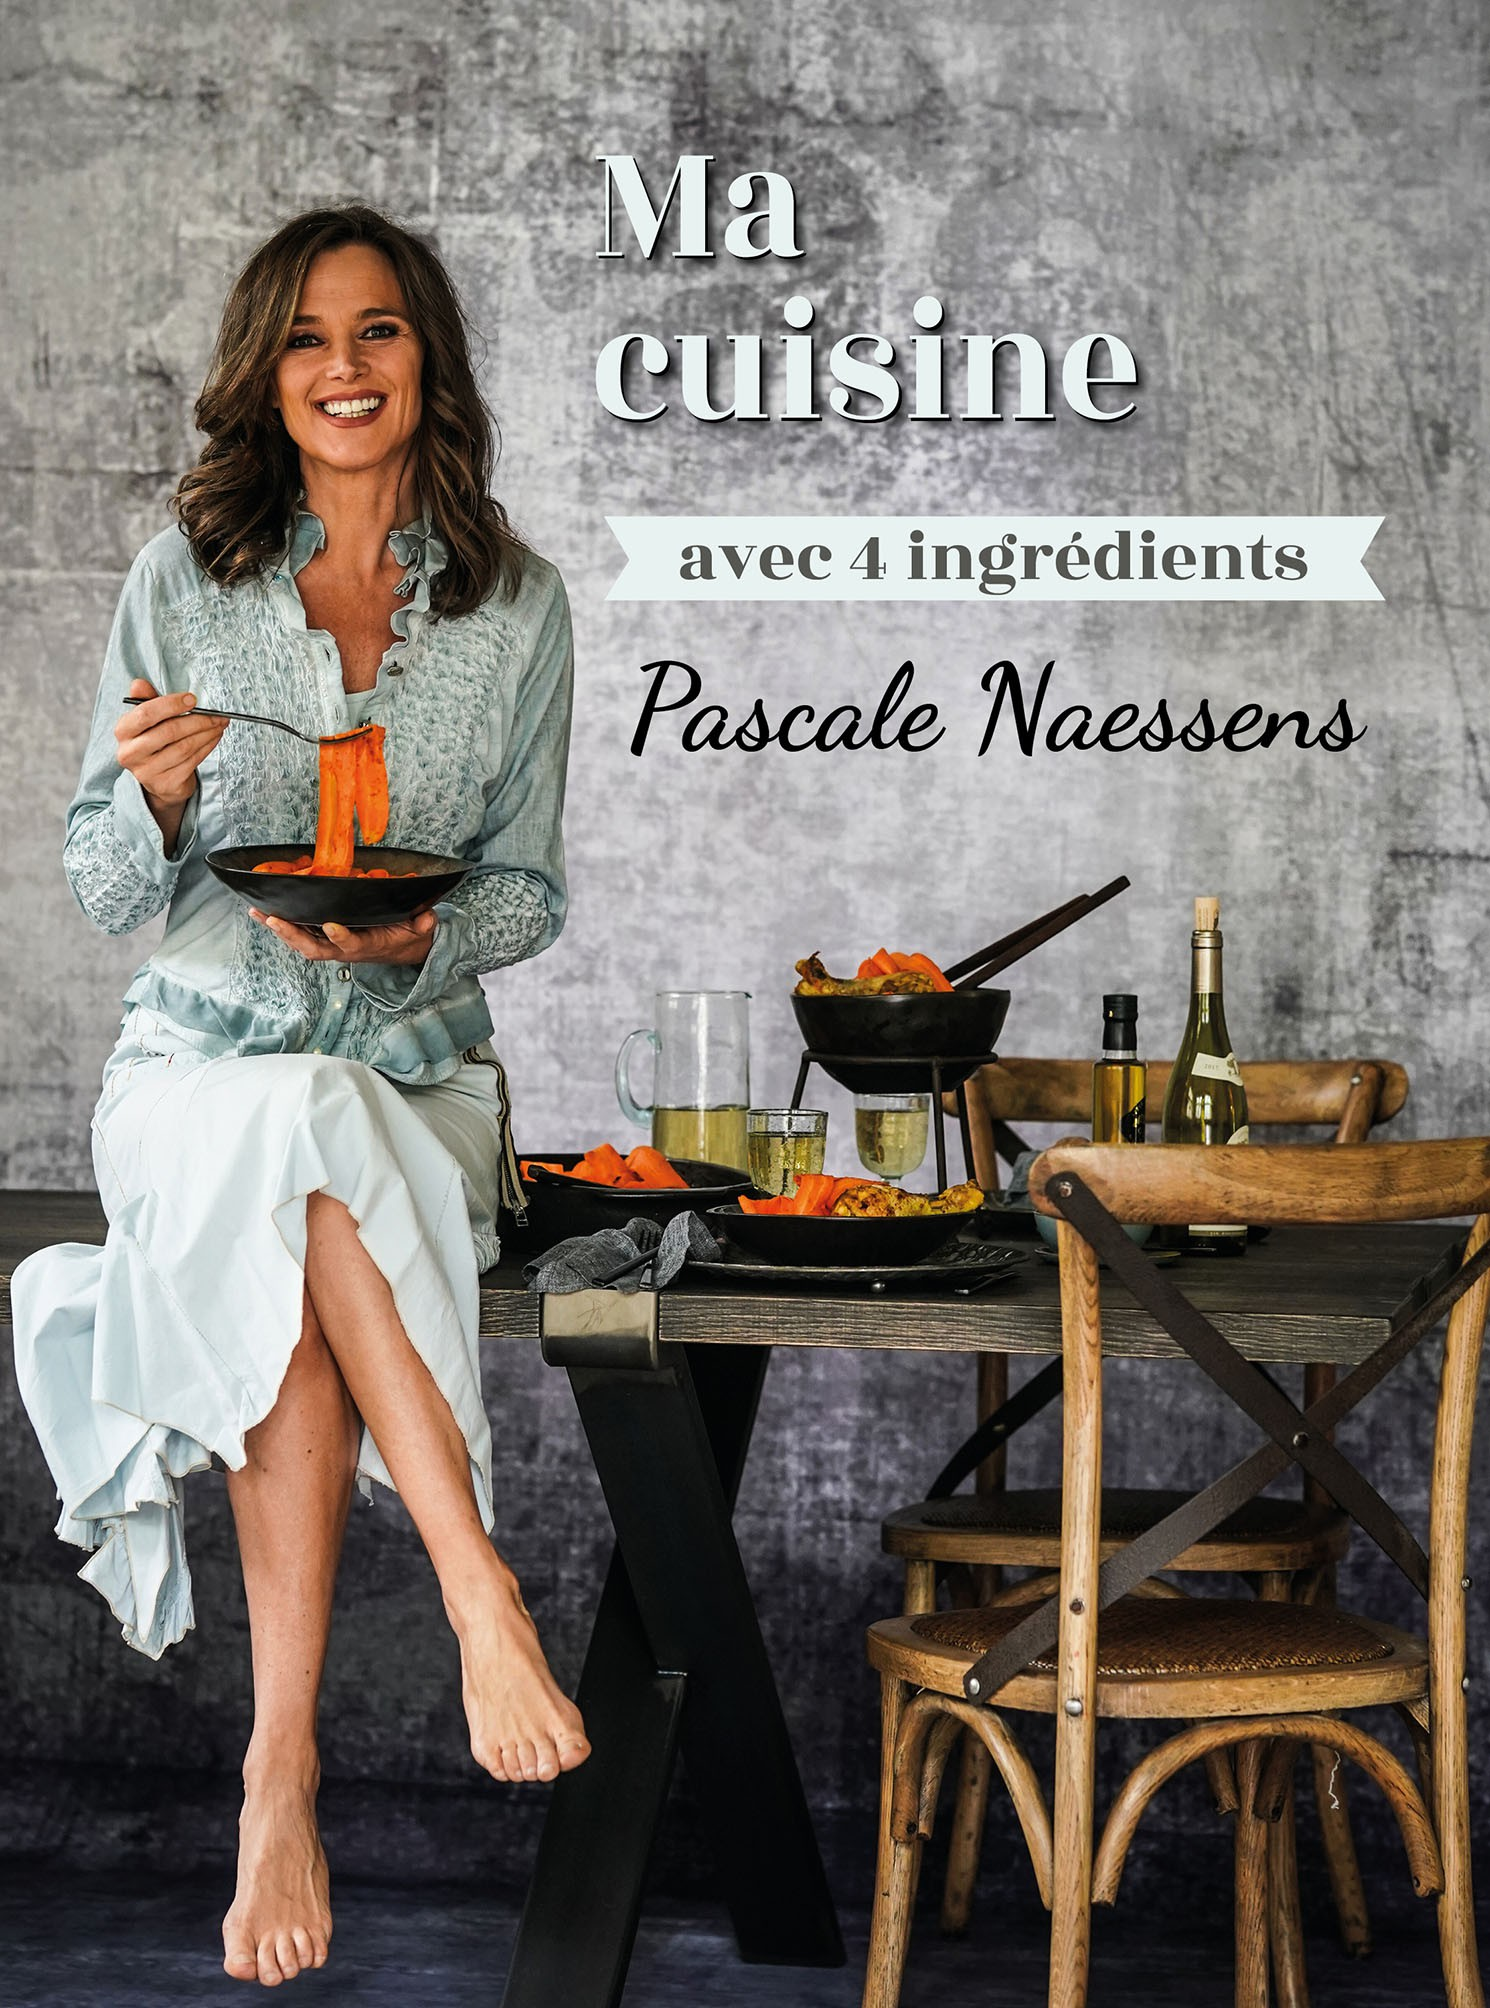 macuisineavec4ingredients naessens